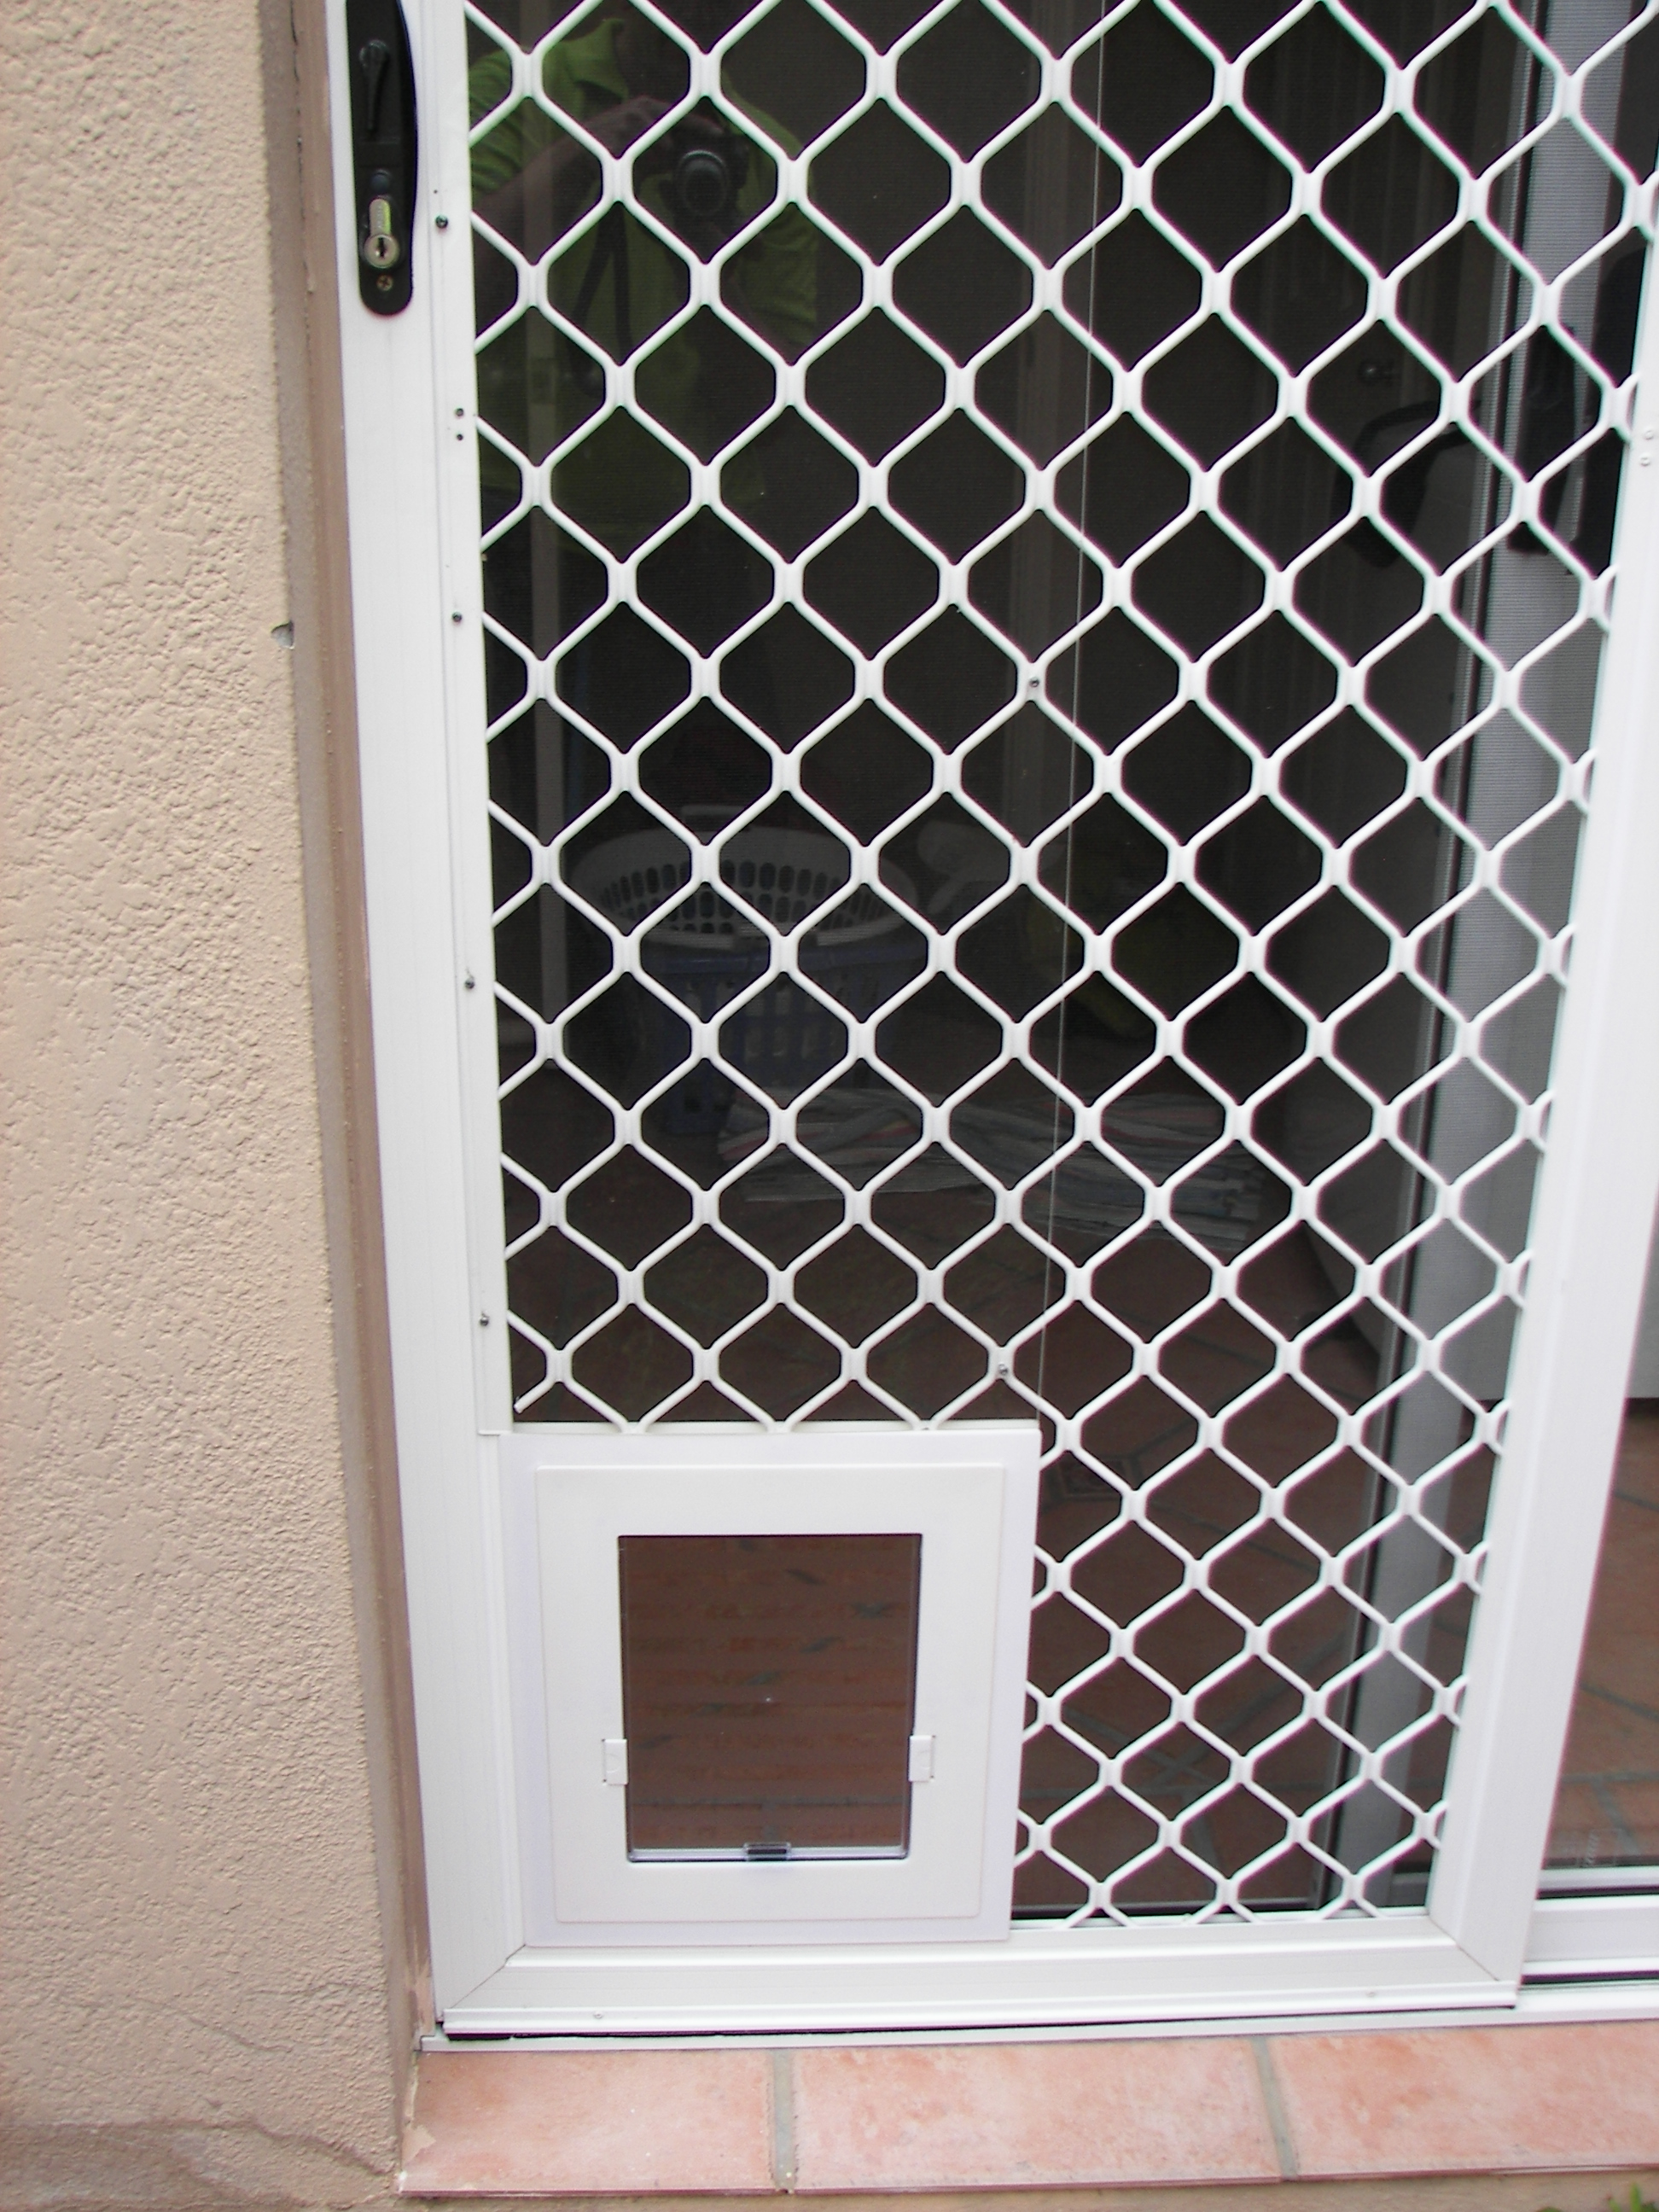 2592 #7E624D Wooden Screen Door With Pet Door Kashiori.com Wooden Sofa Chair  save image Exterior Doors With Pet Door Built In 39171944